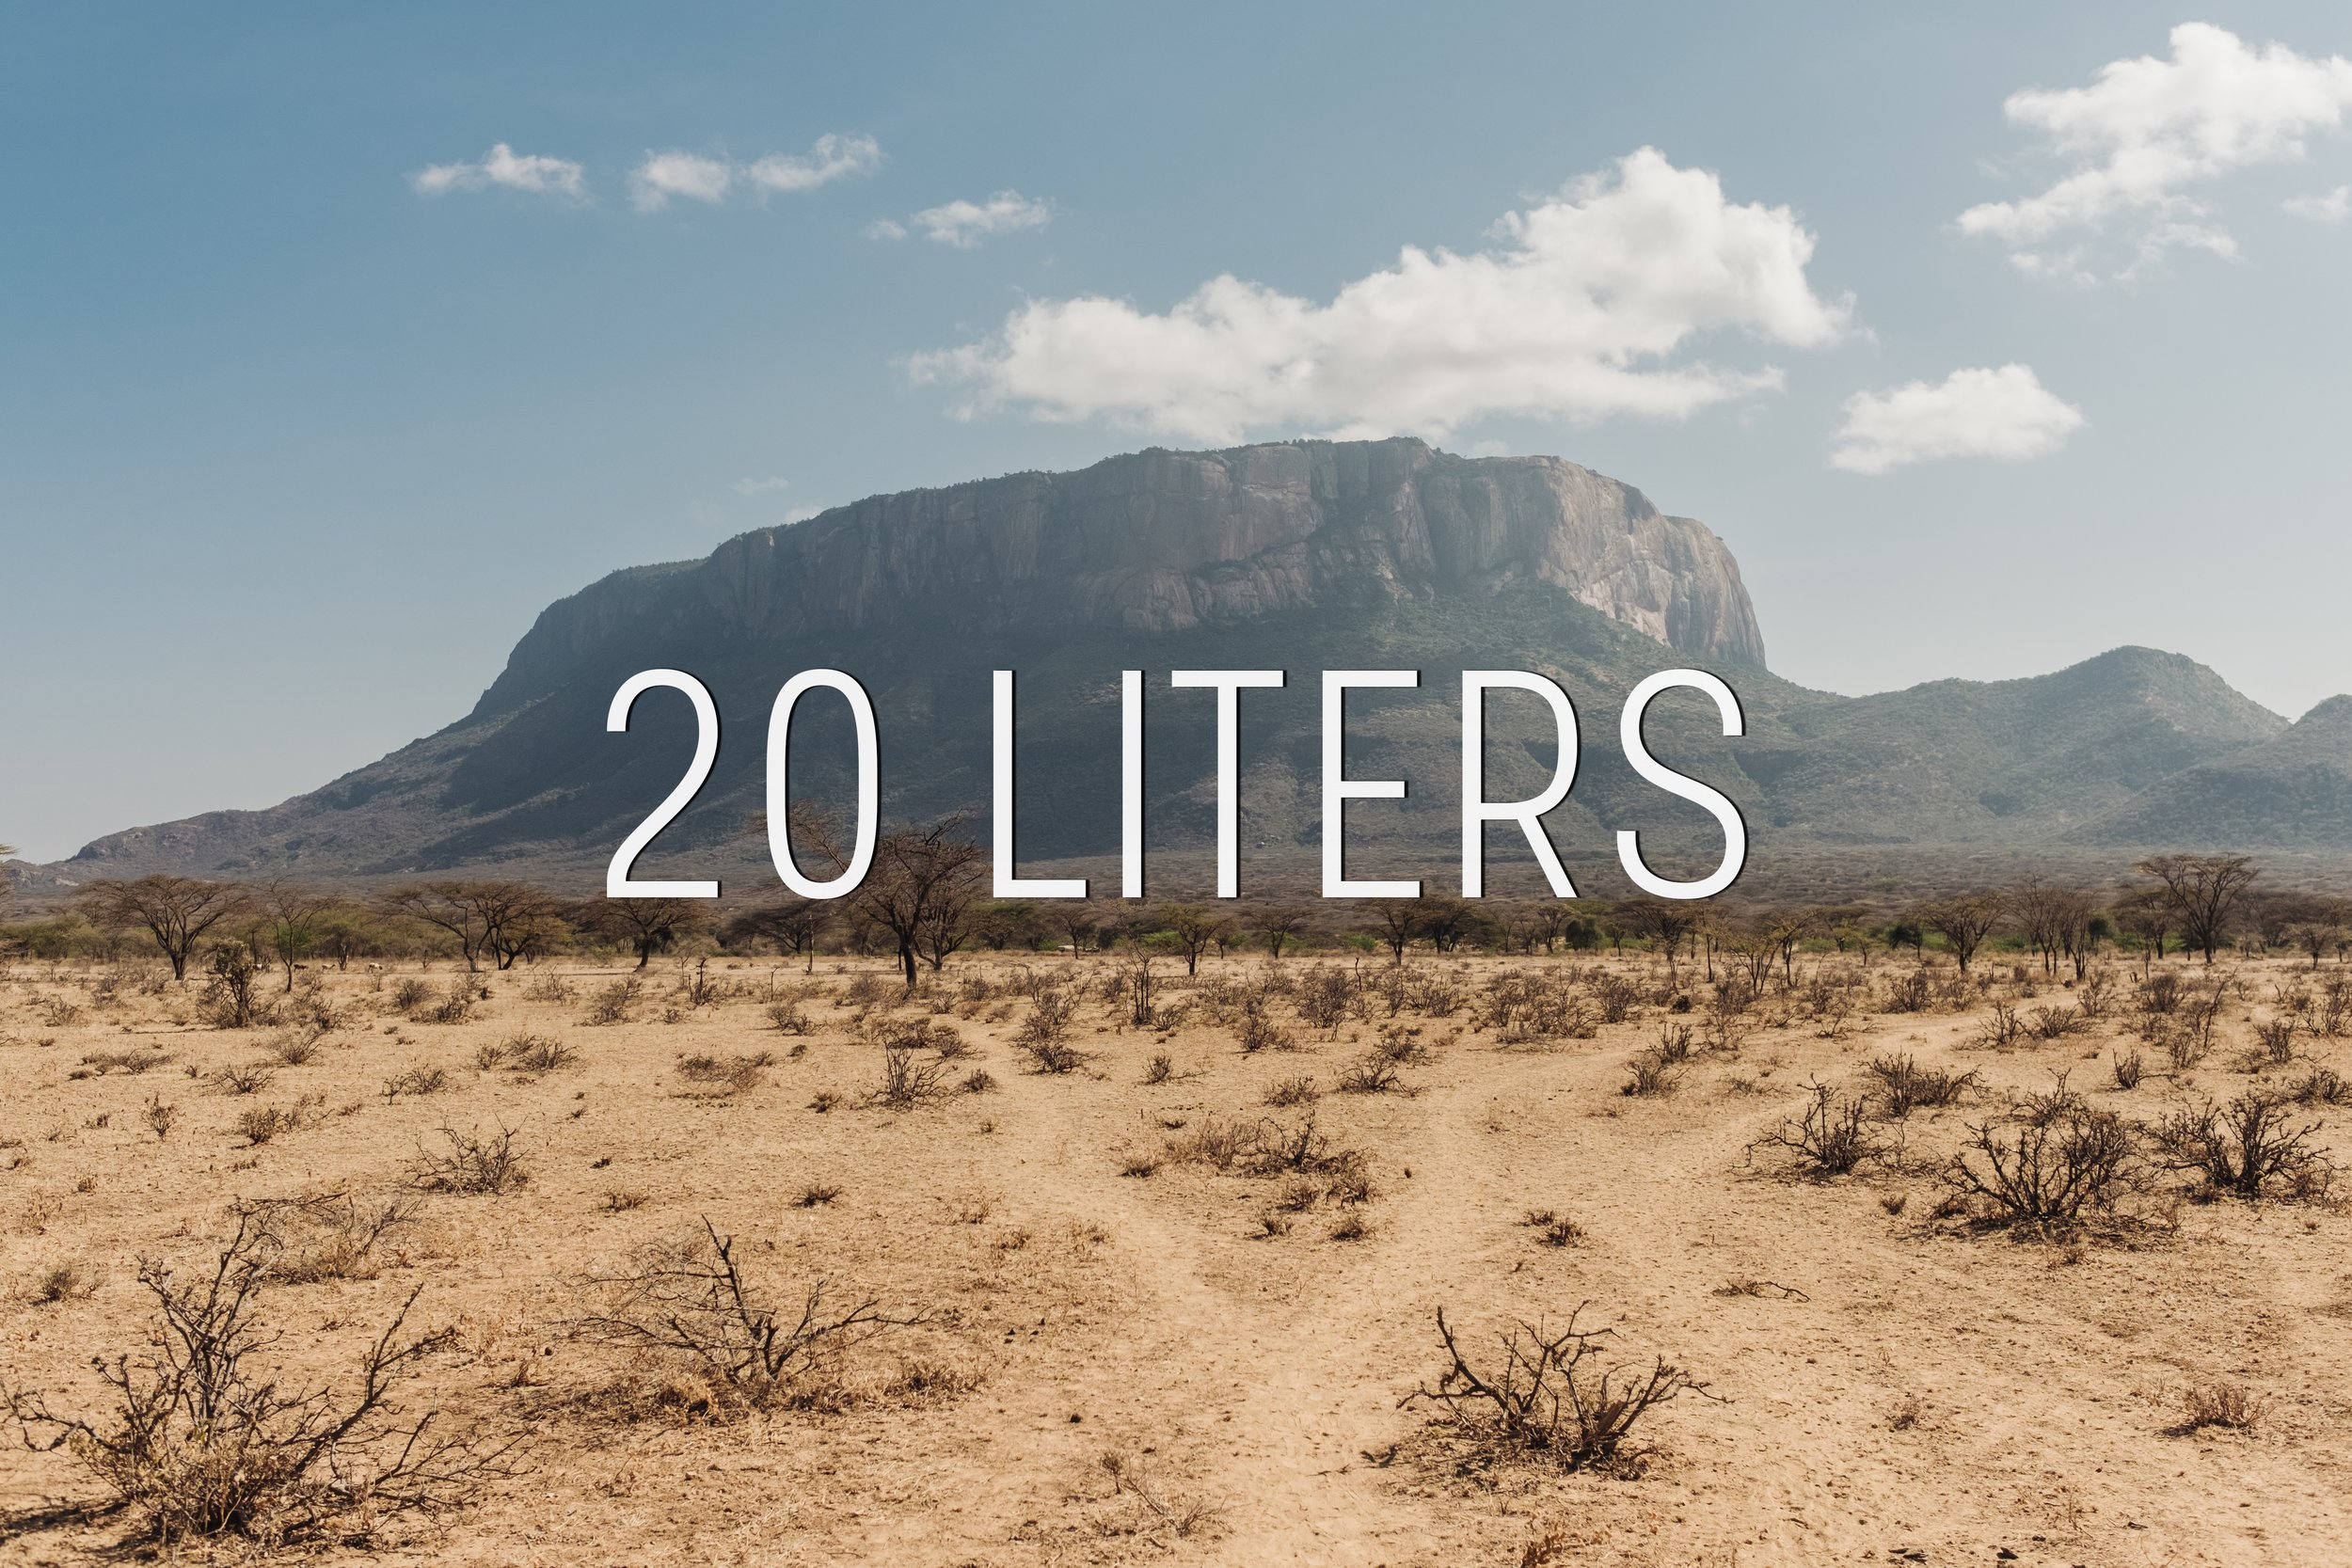 YG Presents 20 Liters.  Finding water is a daily struggle for the families of the Samburu tribe in Kenya. Aaron Thomas and Andy Seiler traveled there to see their way of life first hand, and to give others a glimpse of their daily challenges. Join us March 30th, 10:15AM at YG Church where Aaron and Andy will share about their experience.